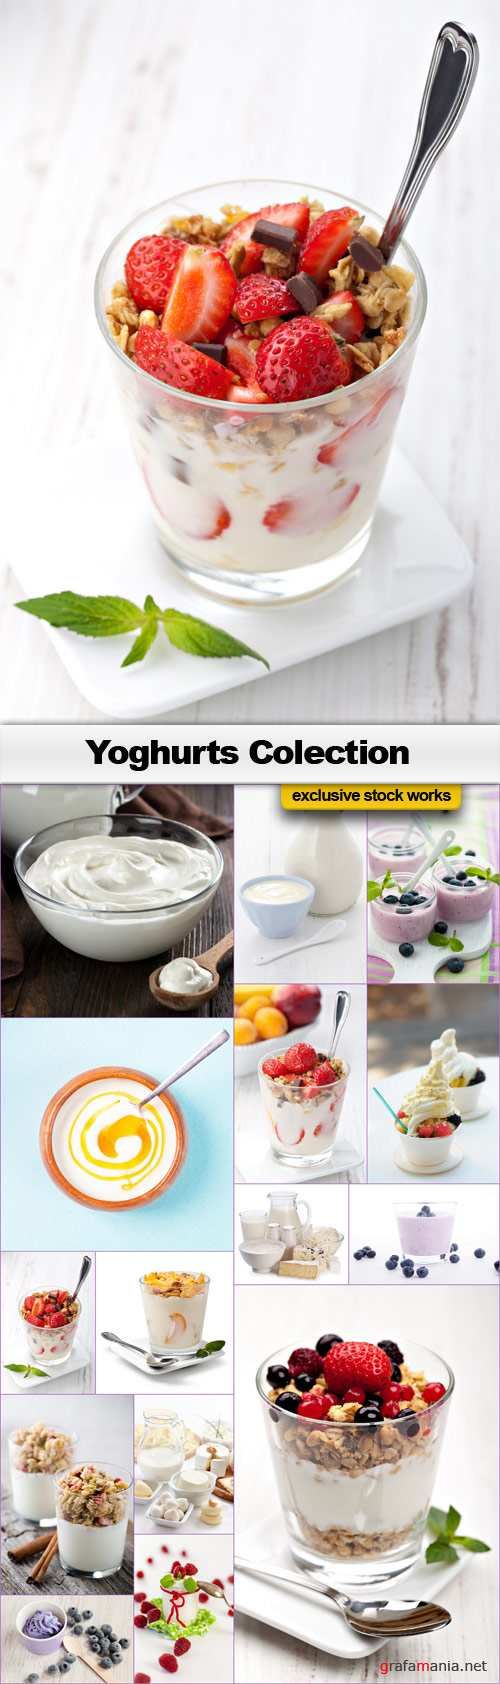 Yoghurts Collection